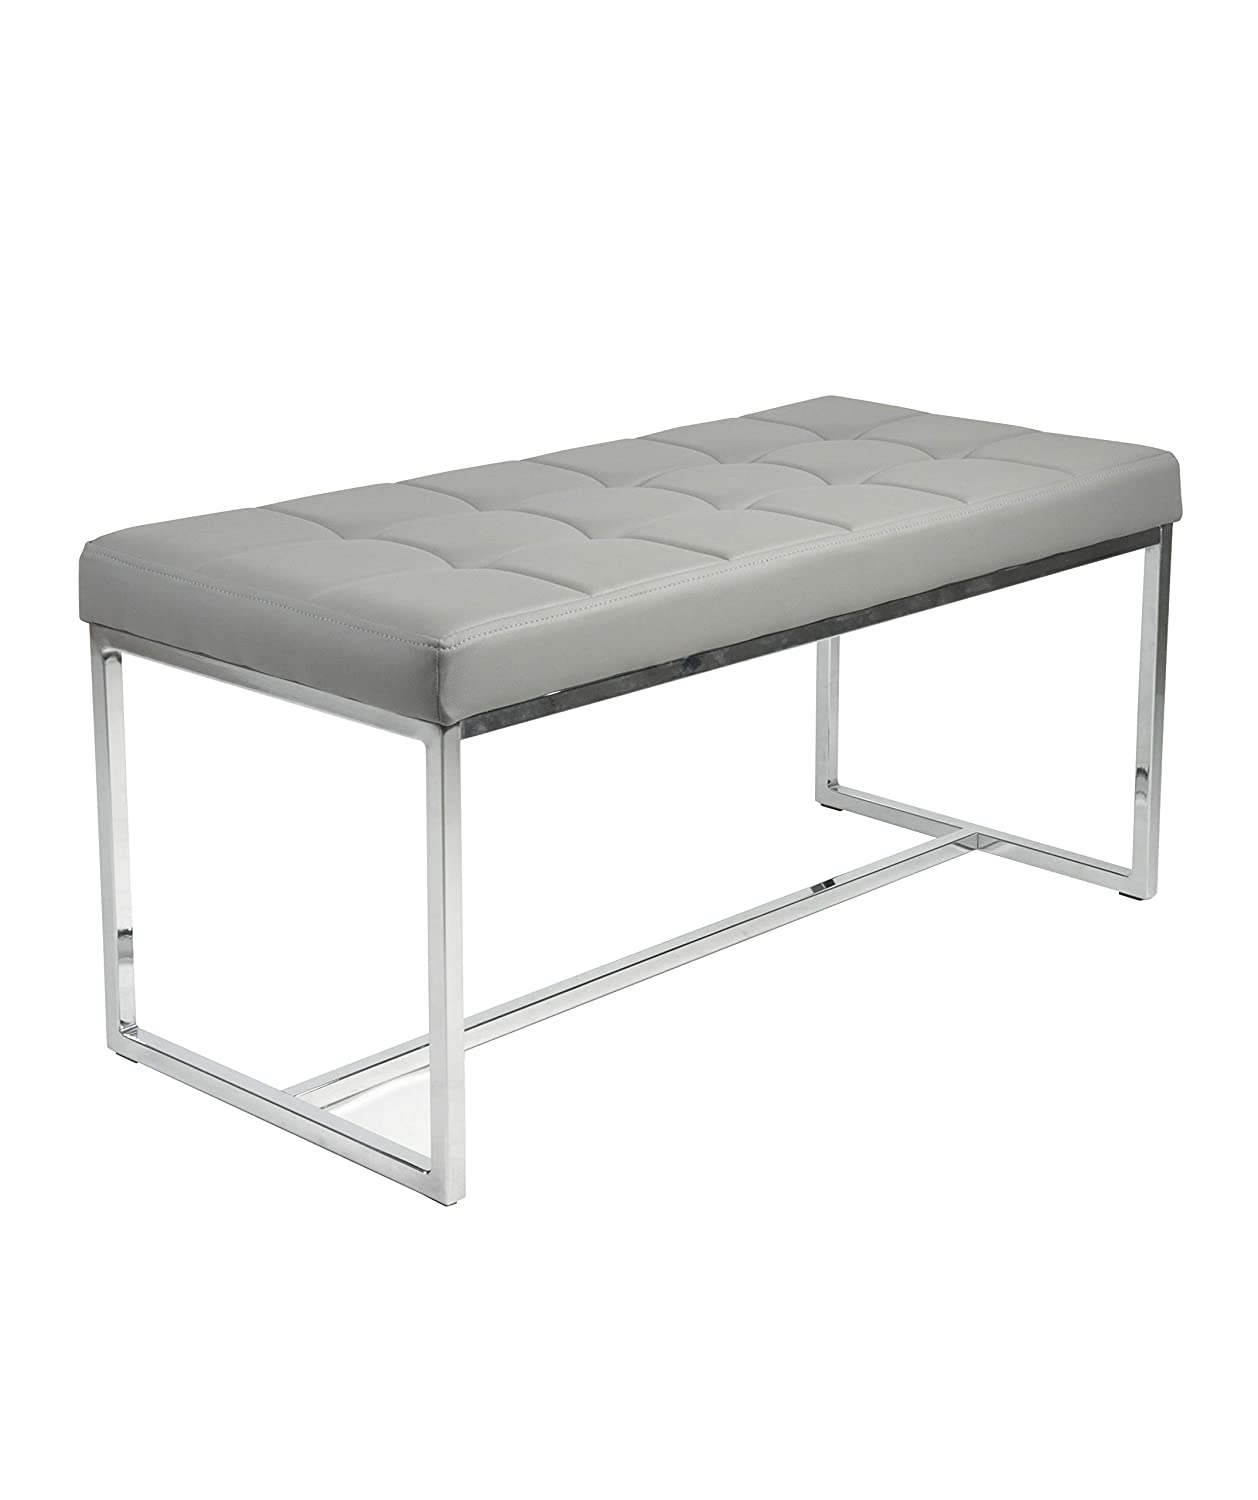 Manchester Furniture Supplies New York Modern Cushioned Leather & Chrome Dining Bench (Grey)